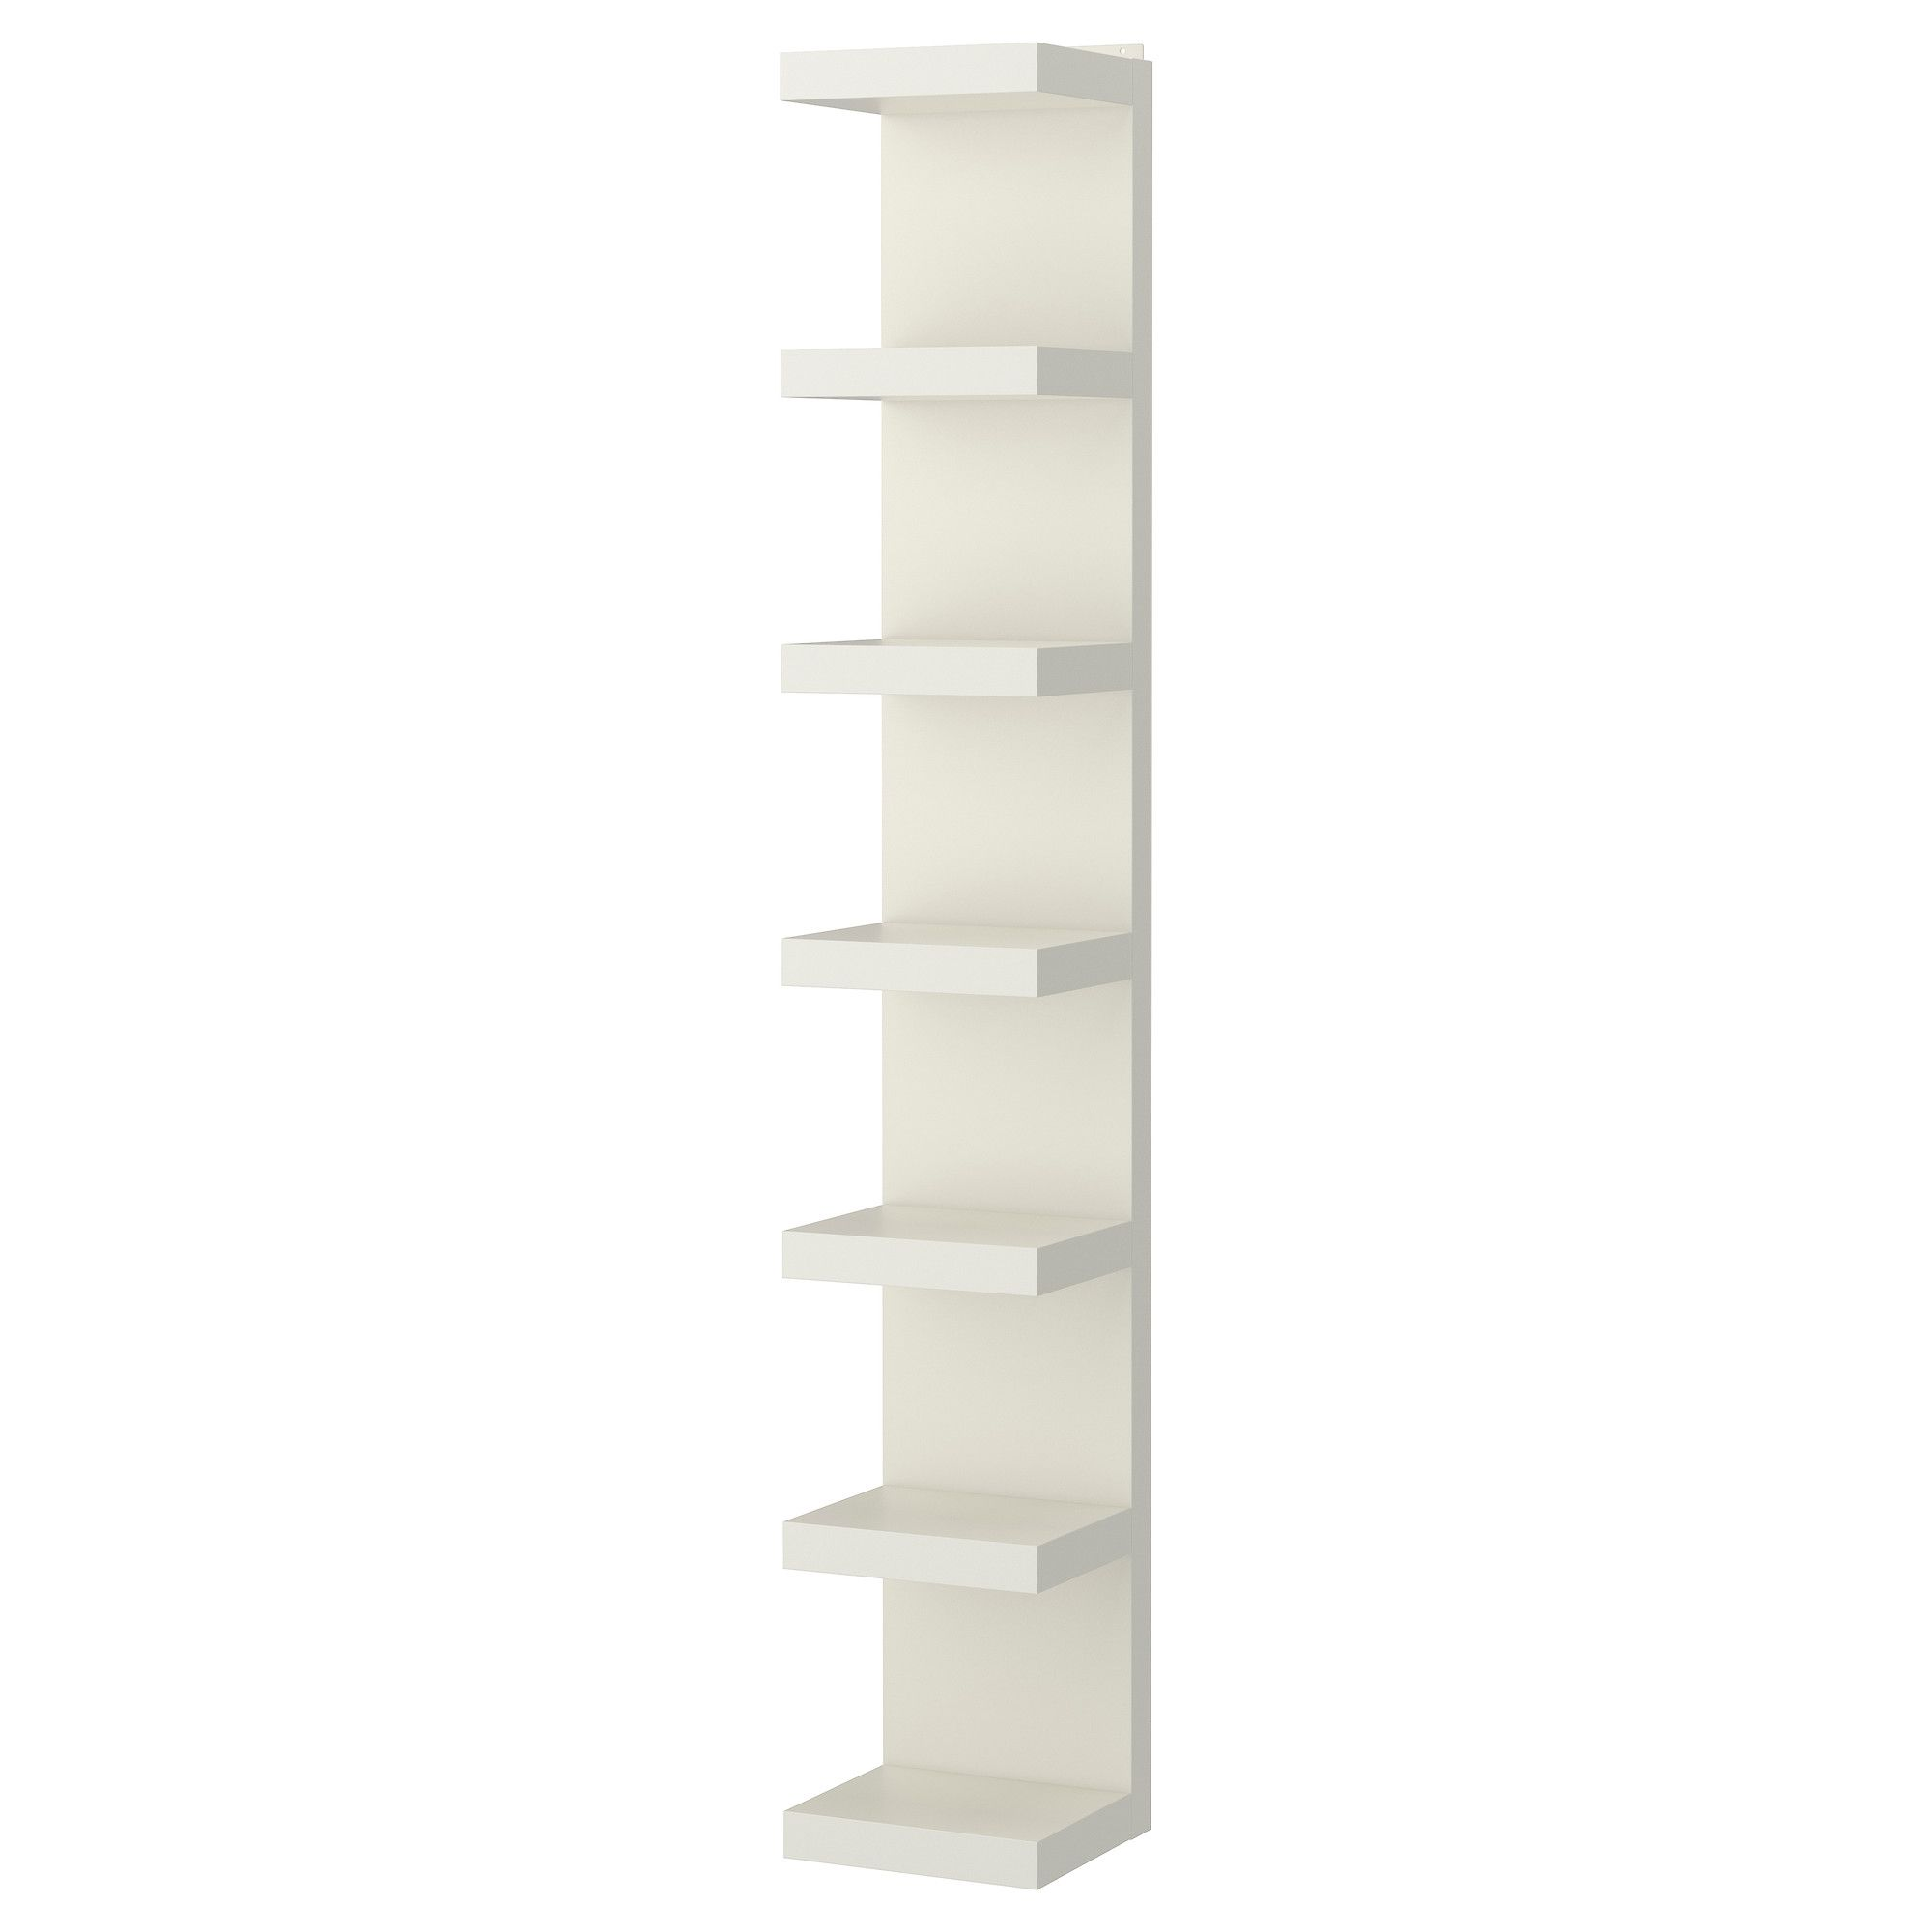 tall narrow bookcases bookcase with tfast ideas bookshelf pict doors white for and thin styles incredible